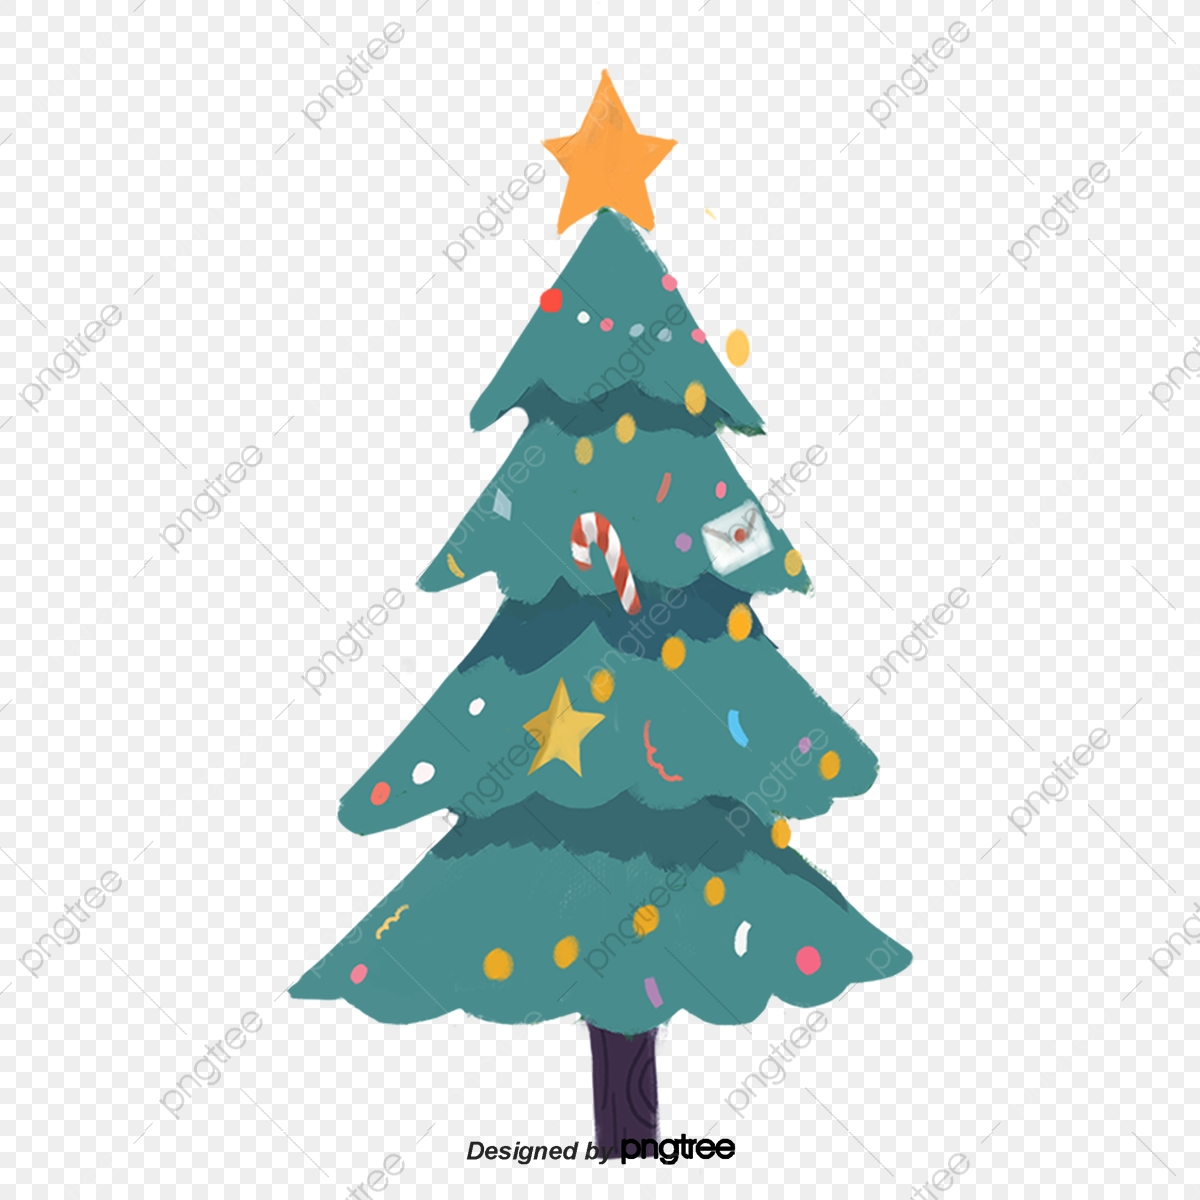 cartoon christmas tree decoration tree clipart cartoon christmas tree png transparent clipart image and psd file for free download https pngtree com freepng cartoon christmas tree decoration 4283458 html